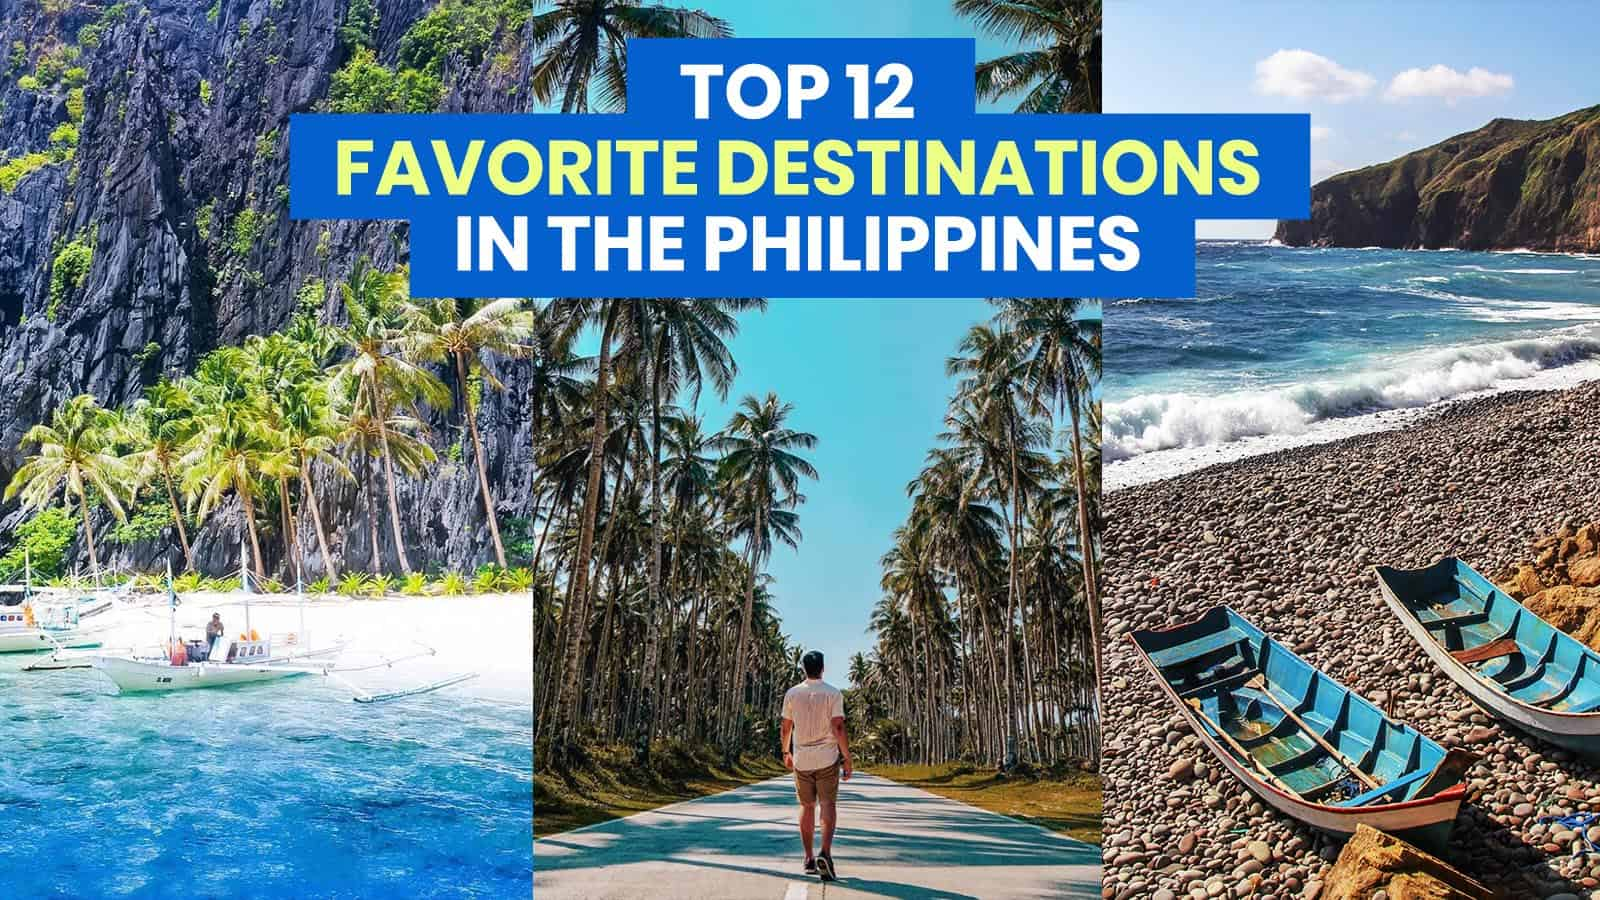 TOP 12 FAVORITE DESTINATIONS IN THE PHILIPPINES (So Far)